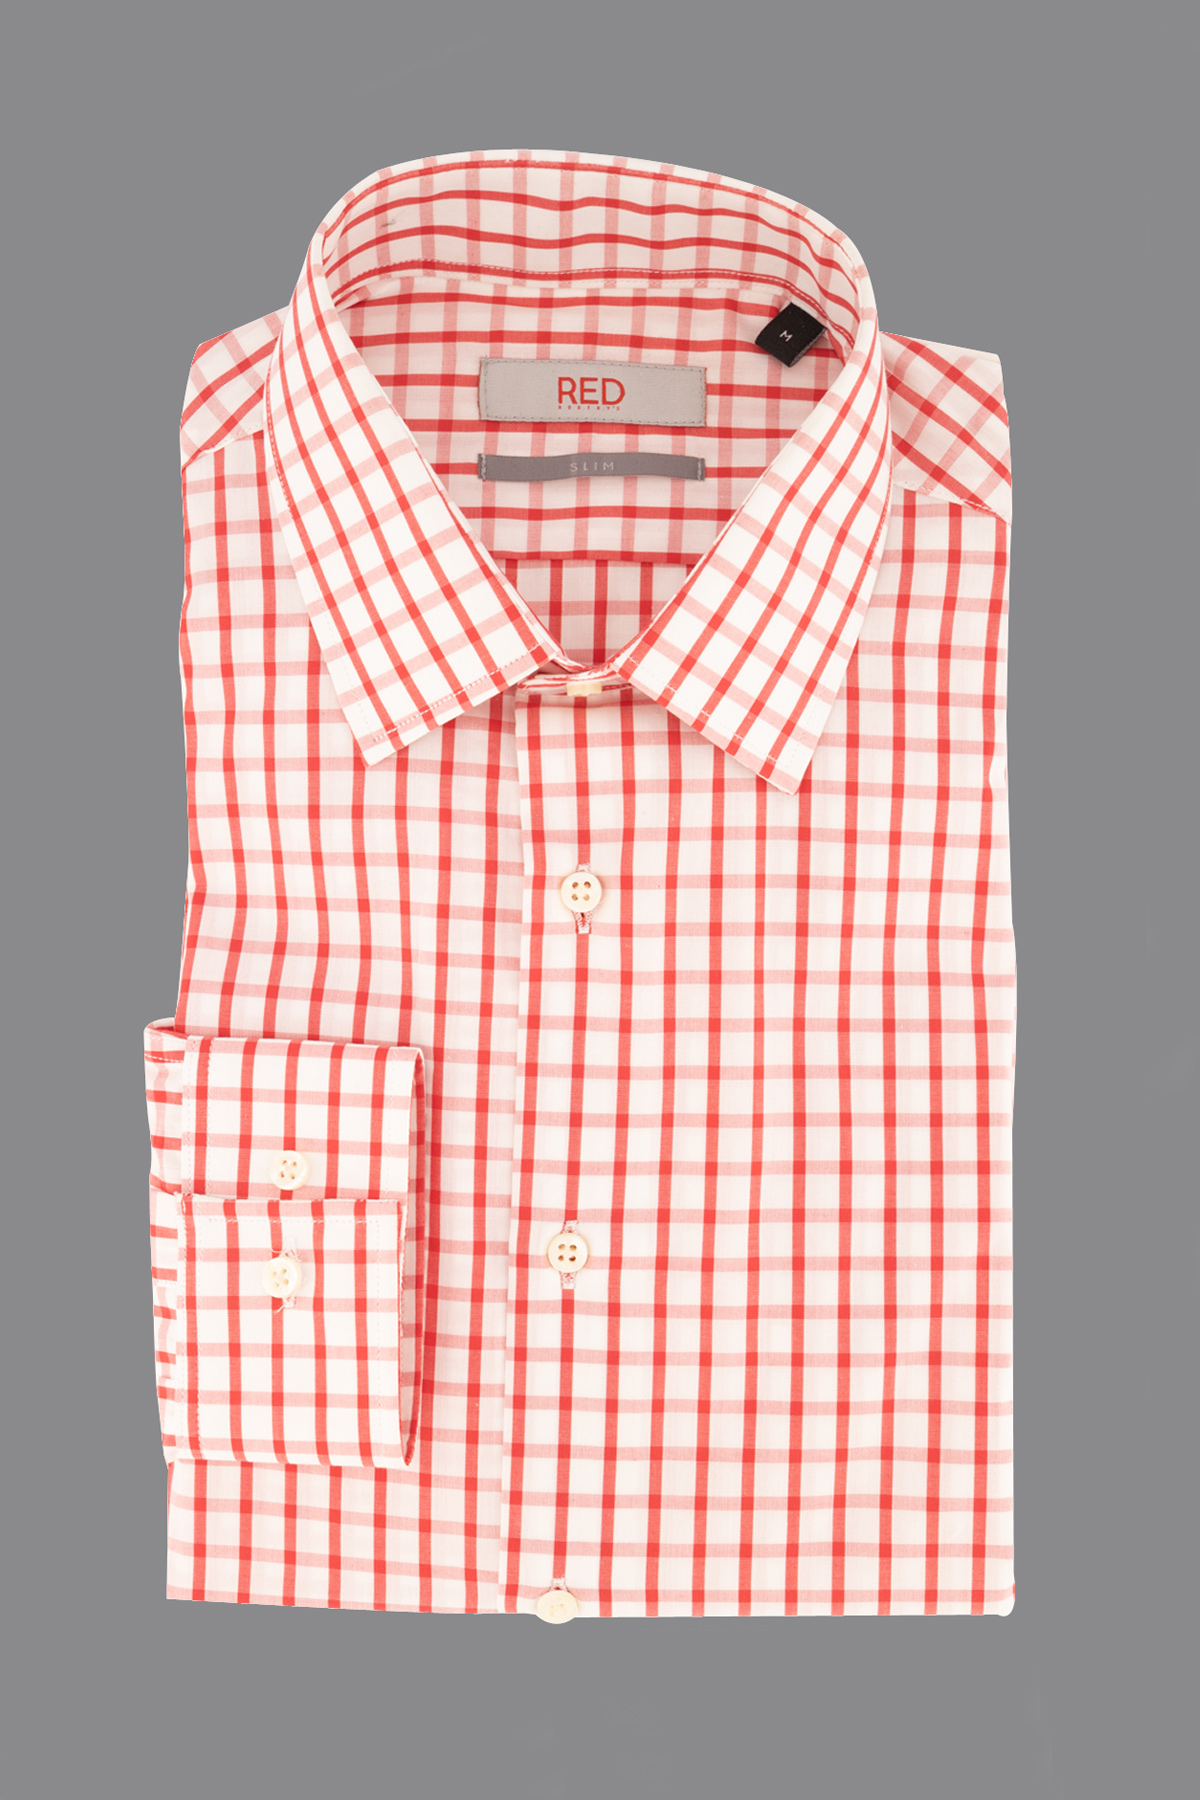 Camisa Robert´s  Red, slim fit, blanca cuadros color rojo.